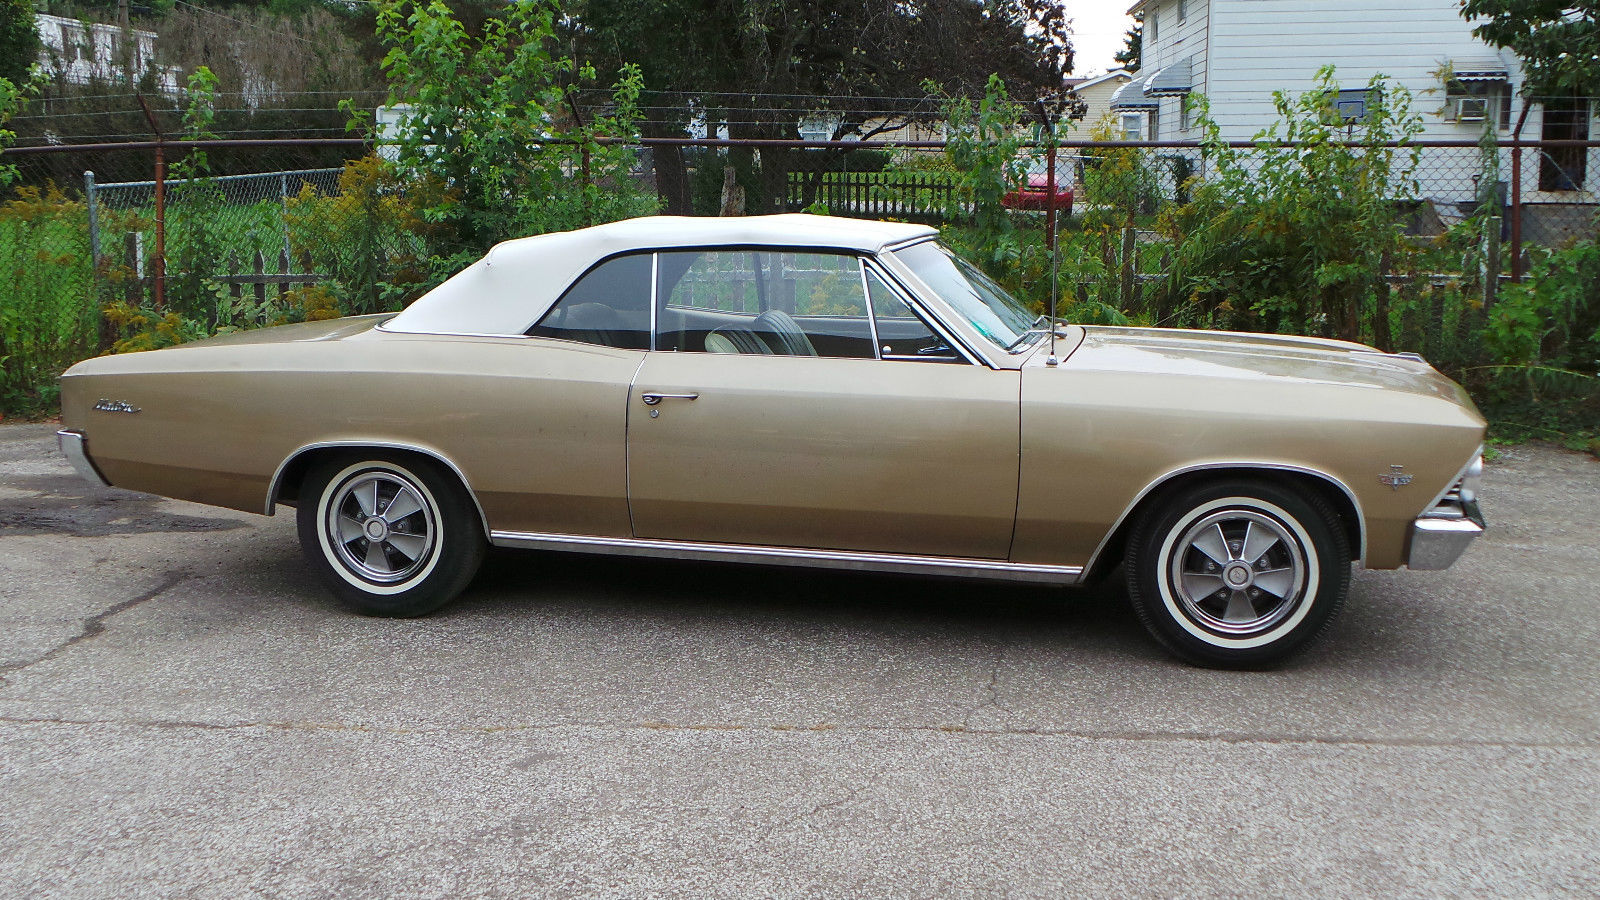 Chevelle Archives Project Cars For Sale 1966 Chevrolet Super Sport Malibu Convertible